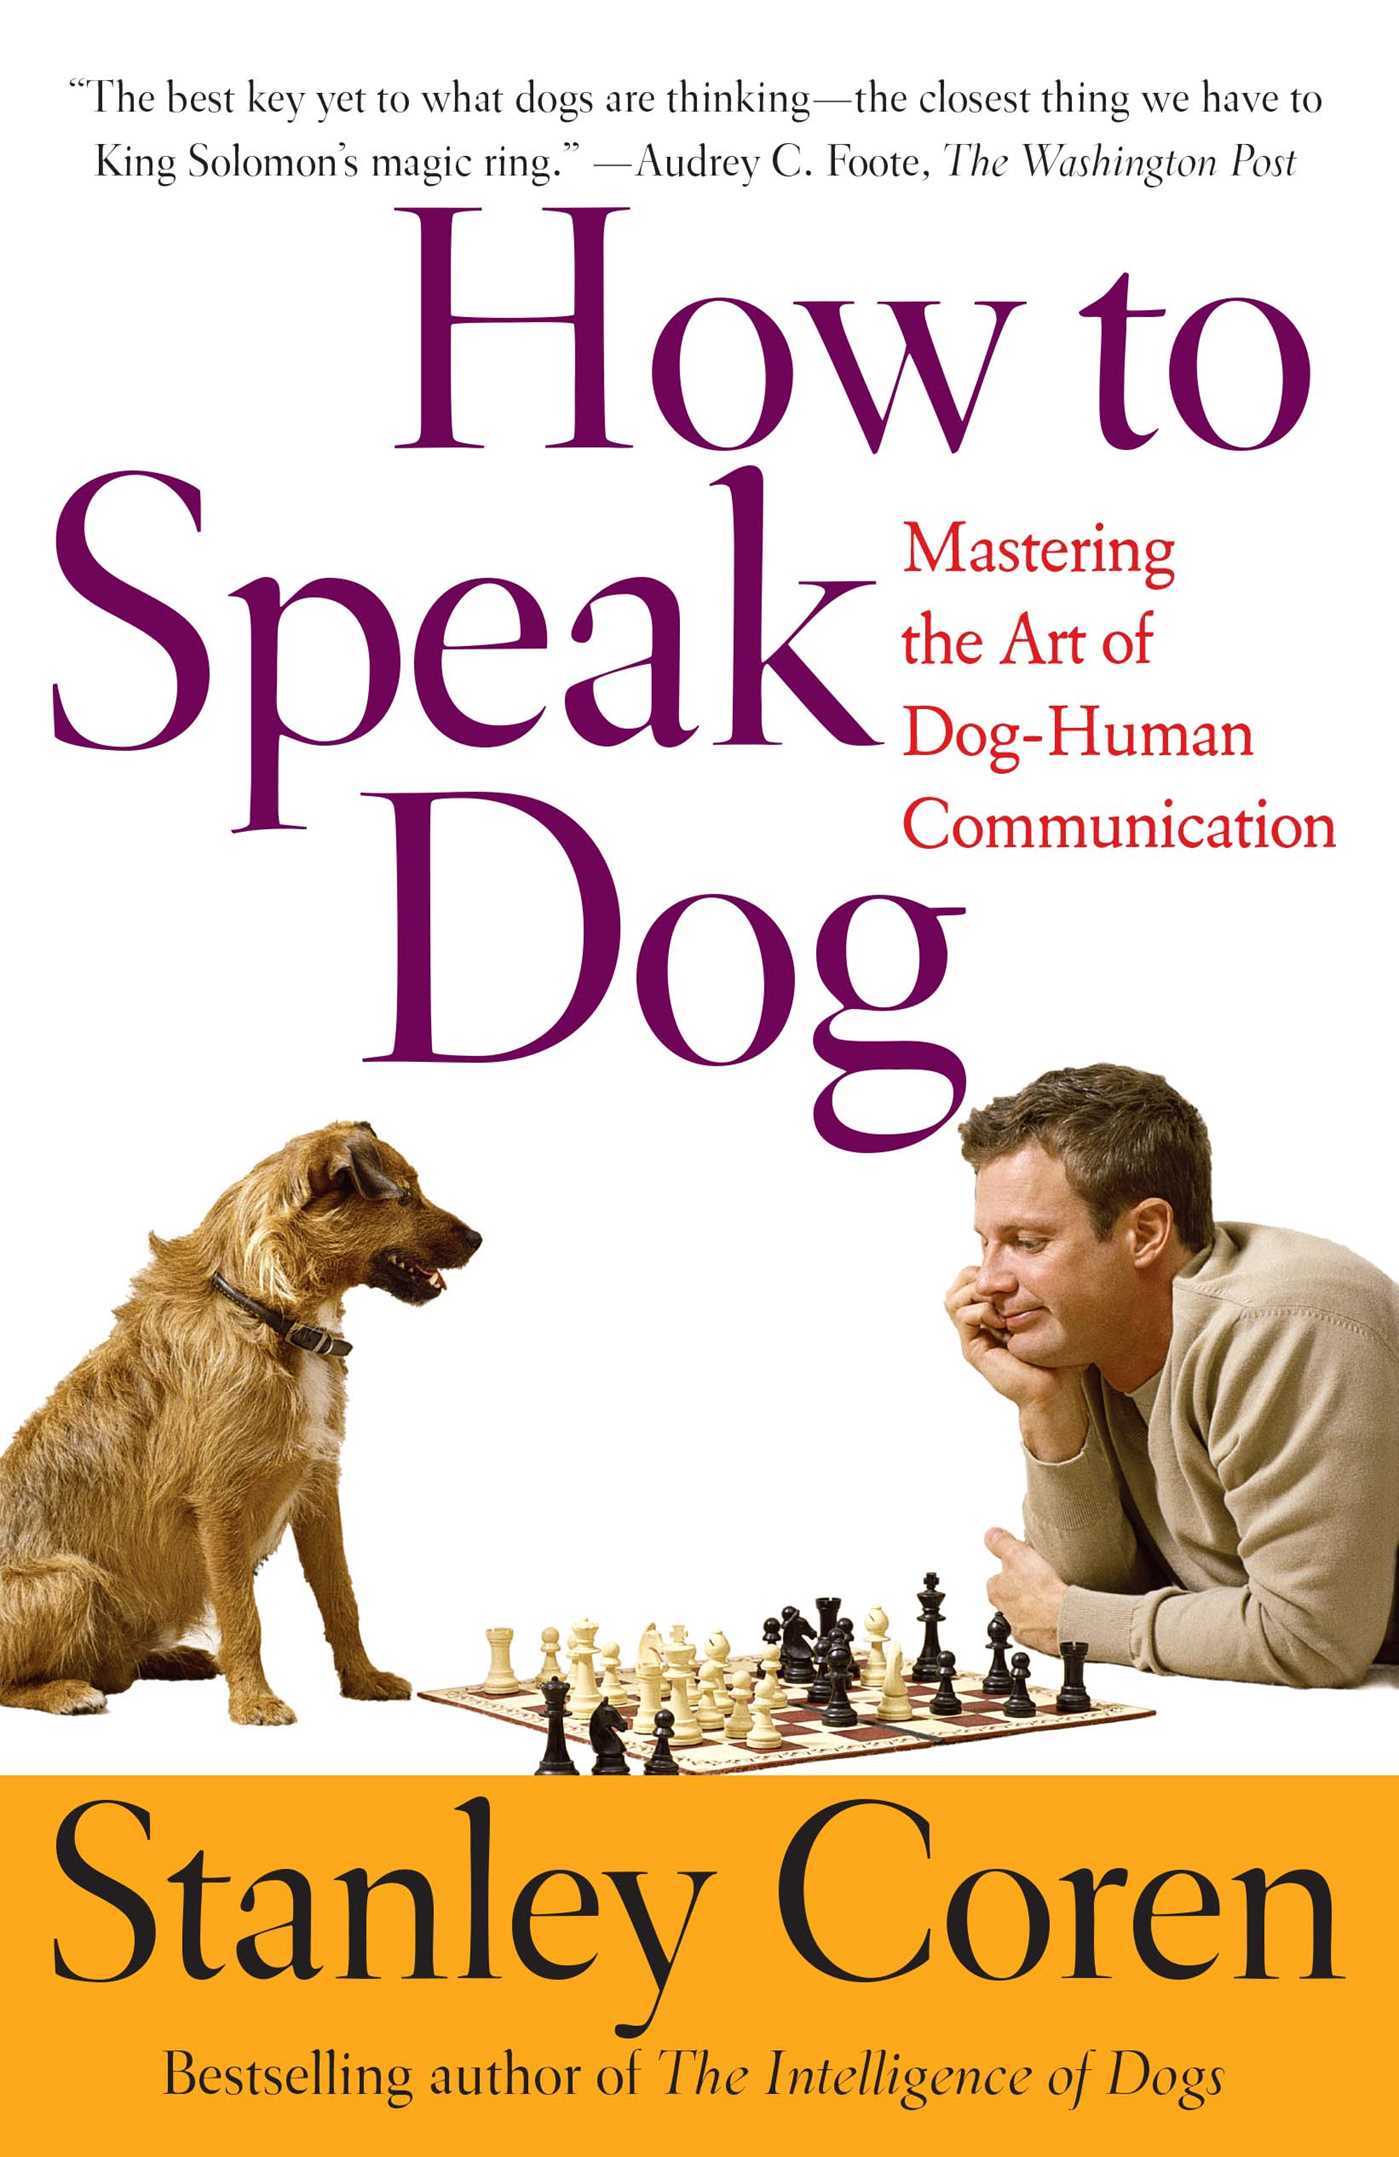 How-to-speak-dog-9781451625684_hr